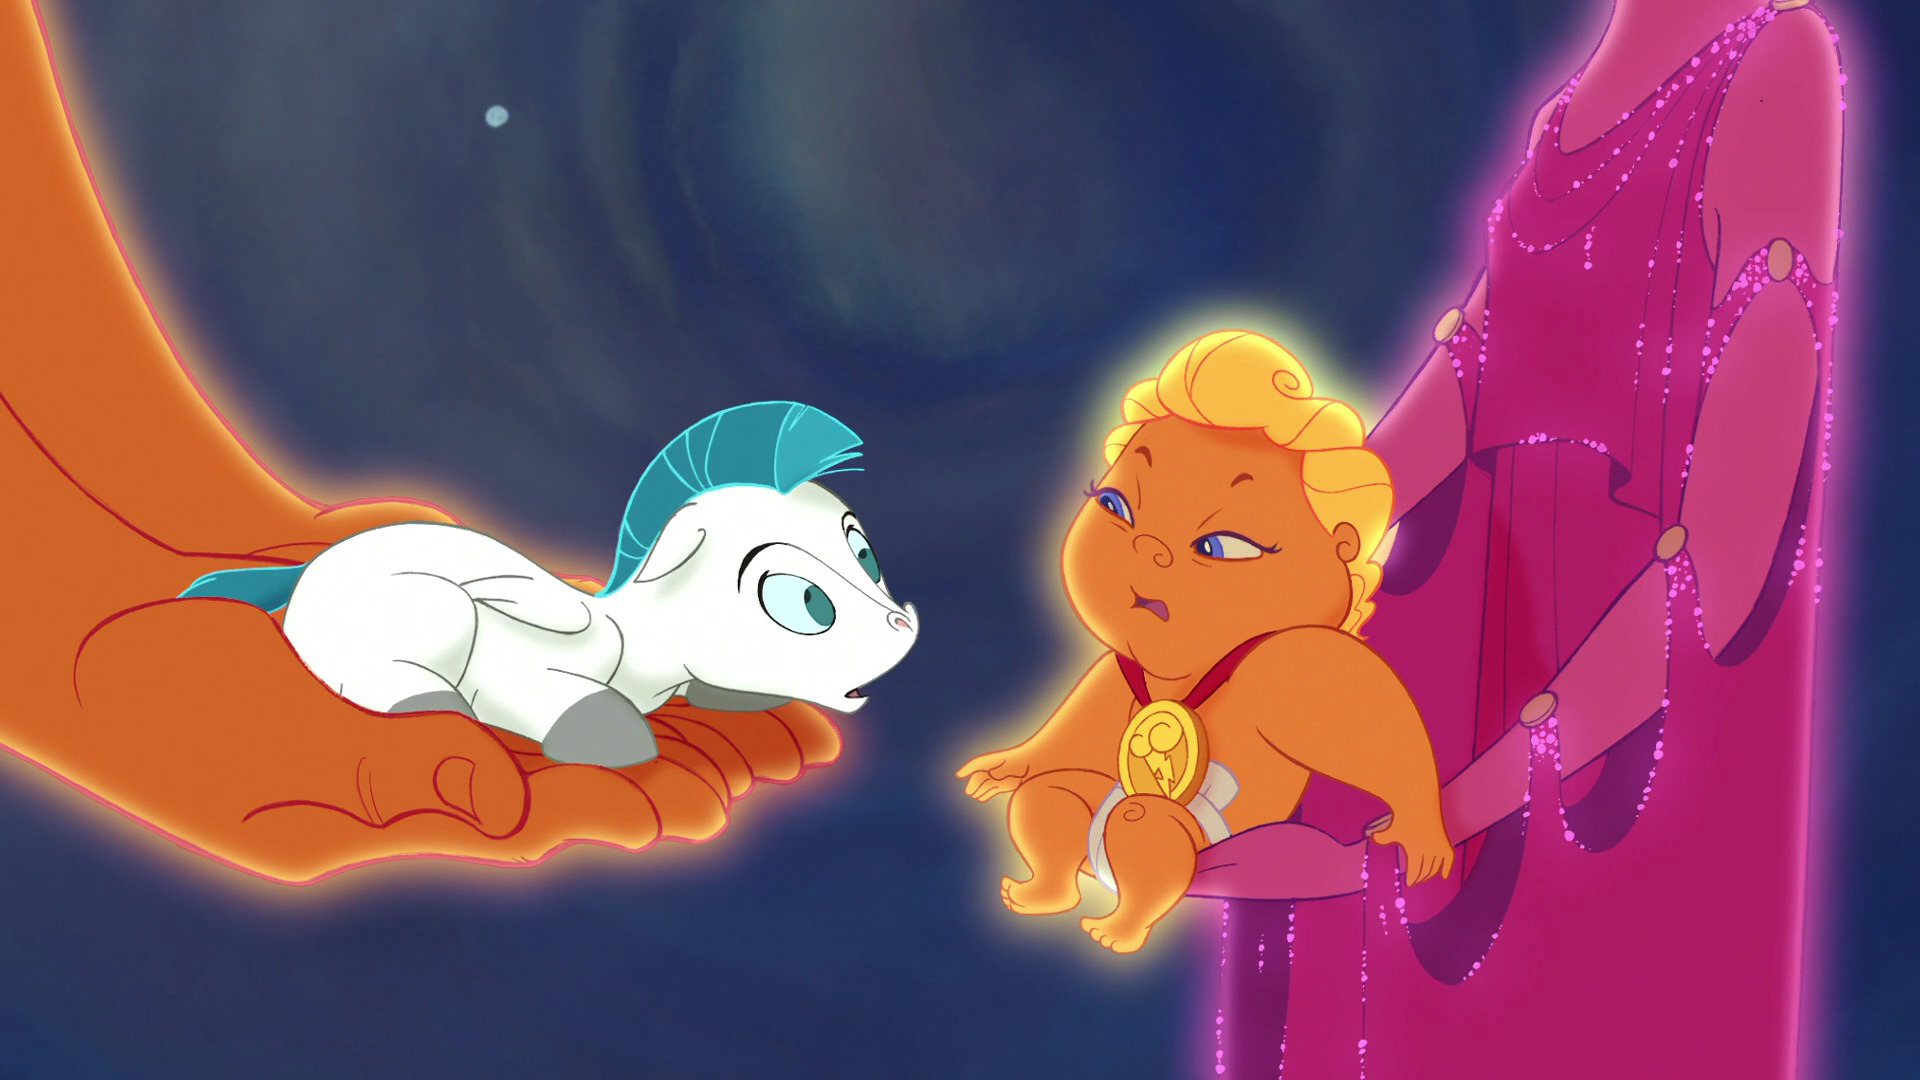 The silhouette of baby Pegasus led to the unfortunate shape. (Credit: Walt Disney)